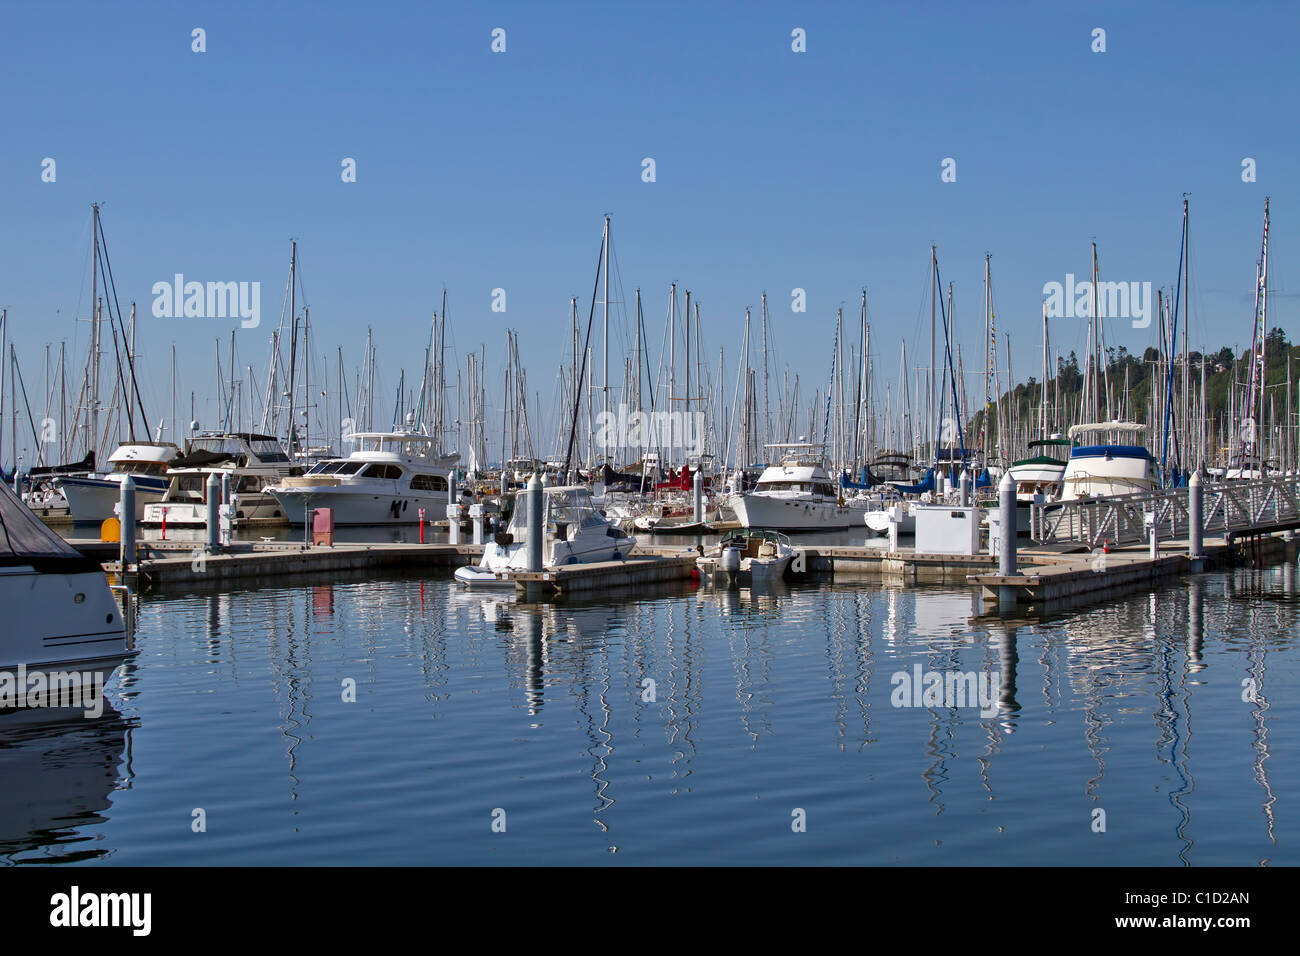 Marina Boat Dock with Clear Blue Sky and Water Reflection - Stock Image